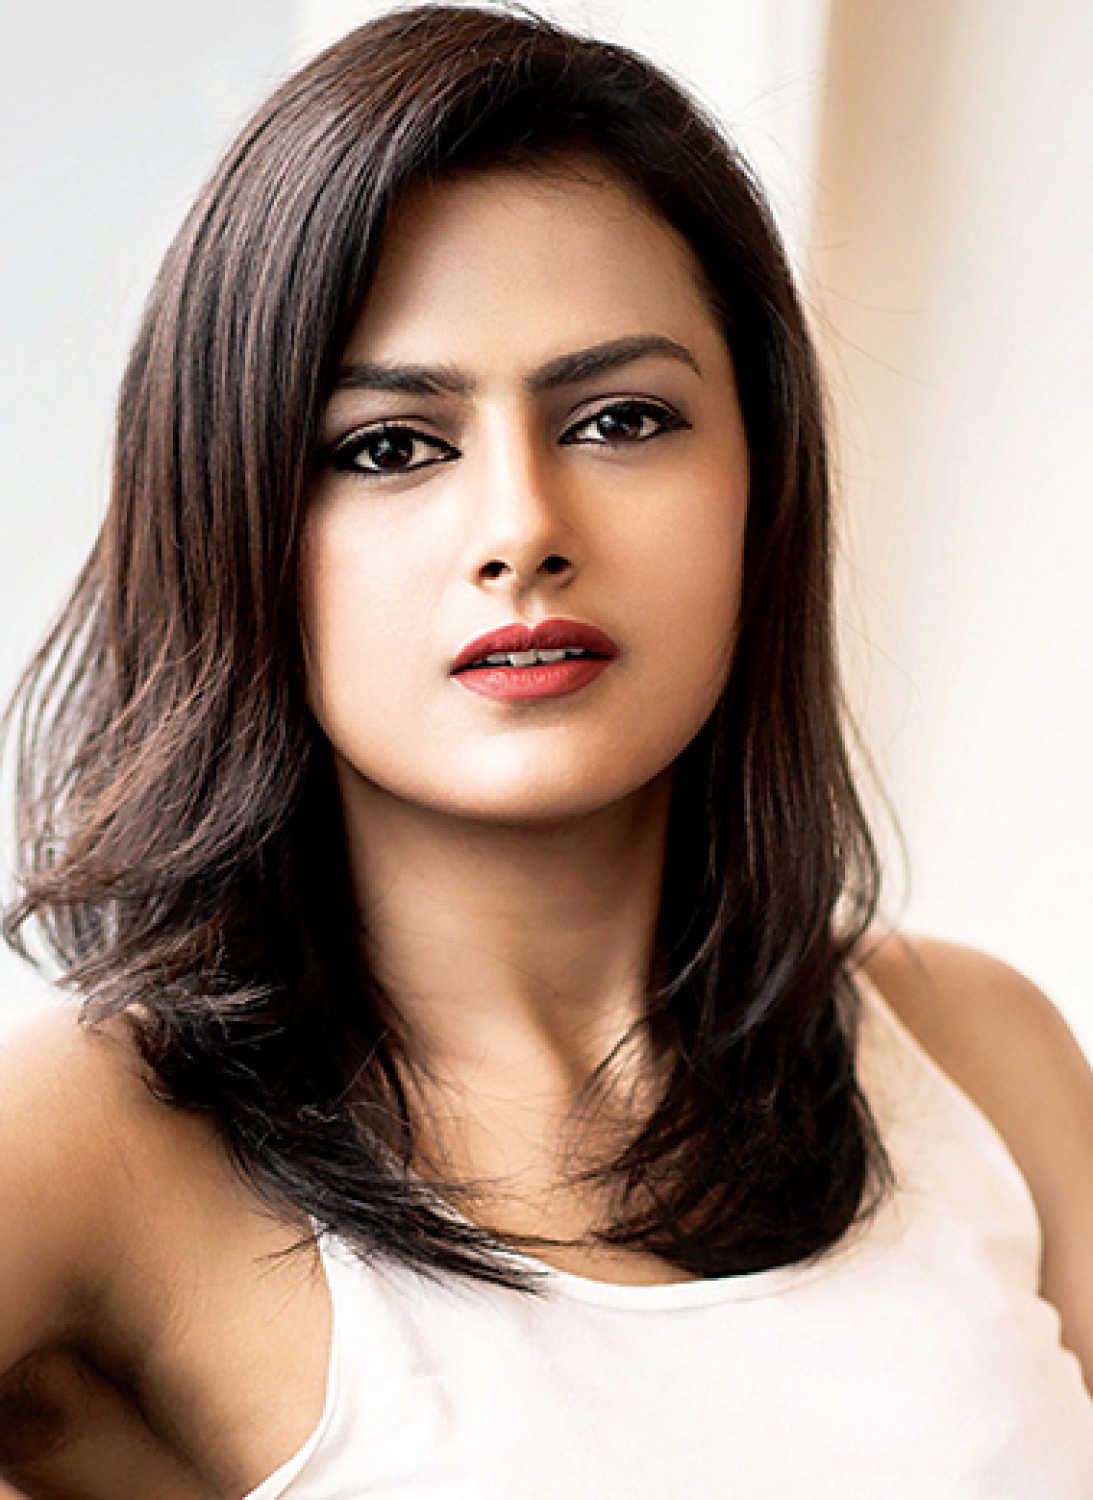 Discussion on this topic: Maryann Plunkett, shraddha-srinath/